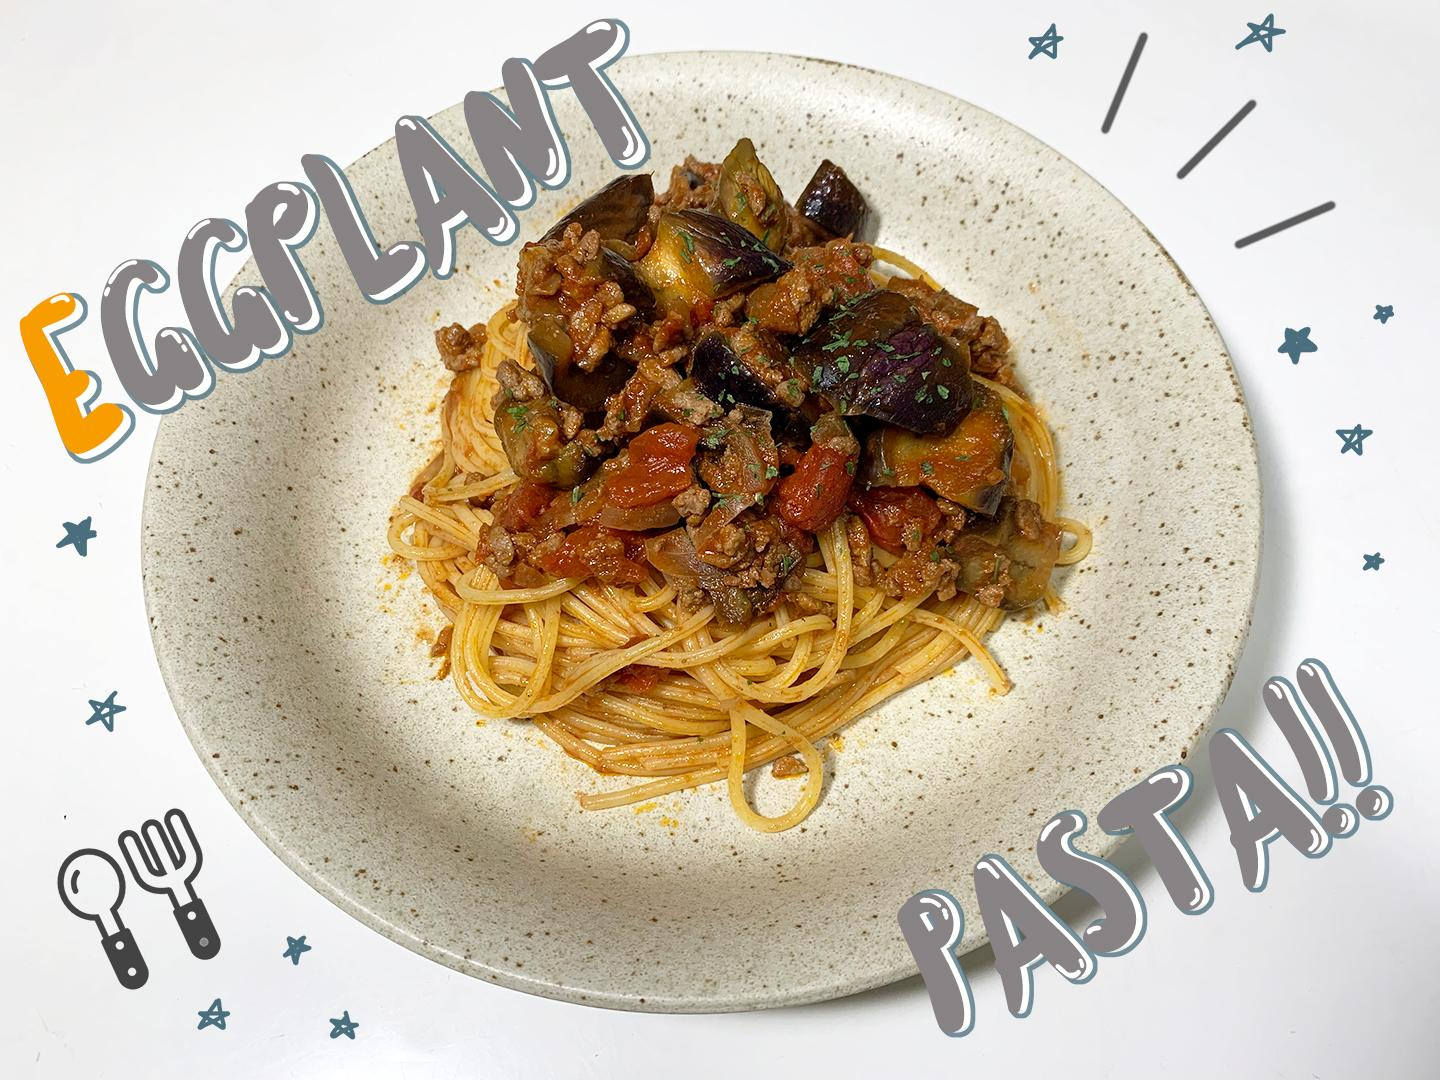 1: It is real meat sauce pasta with eggplant and ground meat image rumblingly